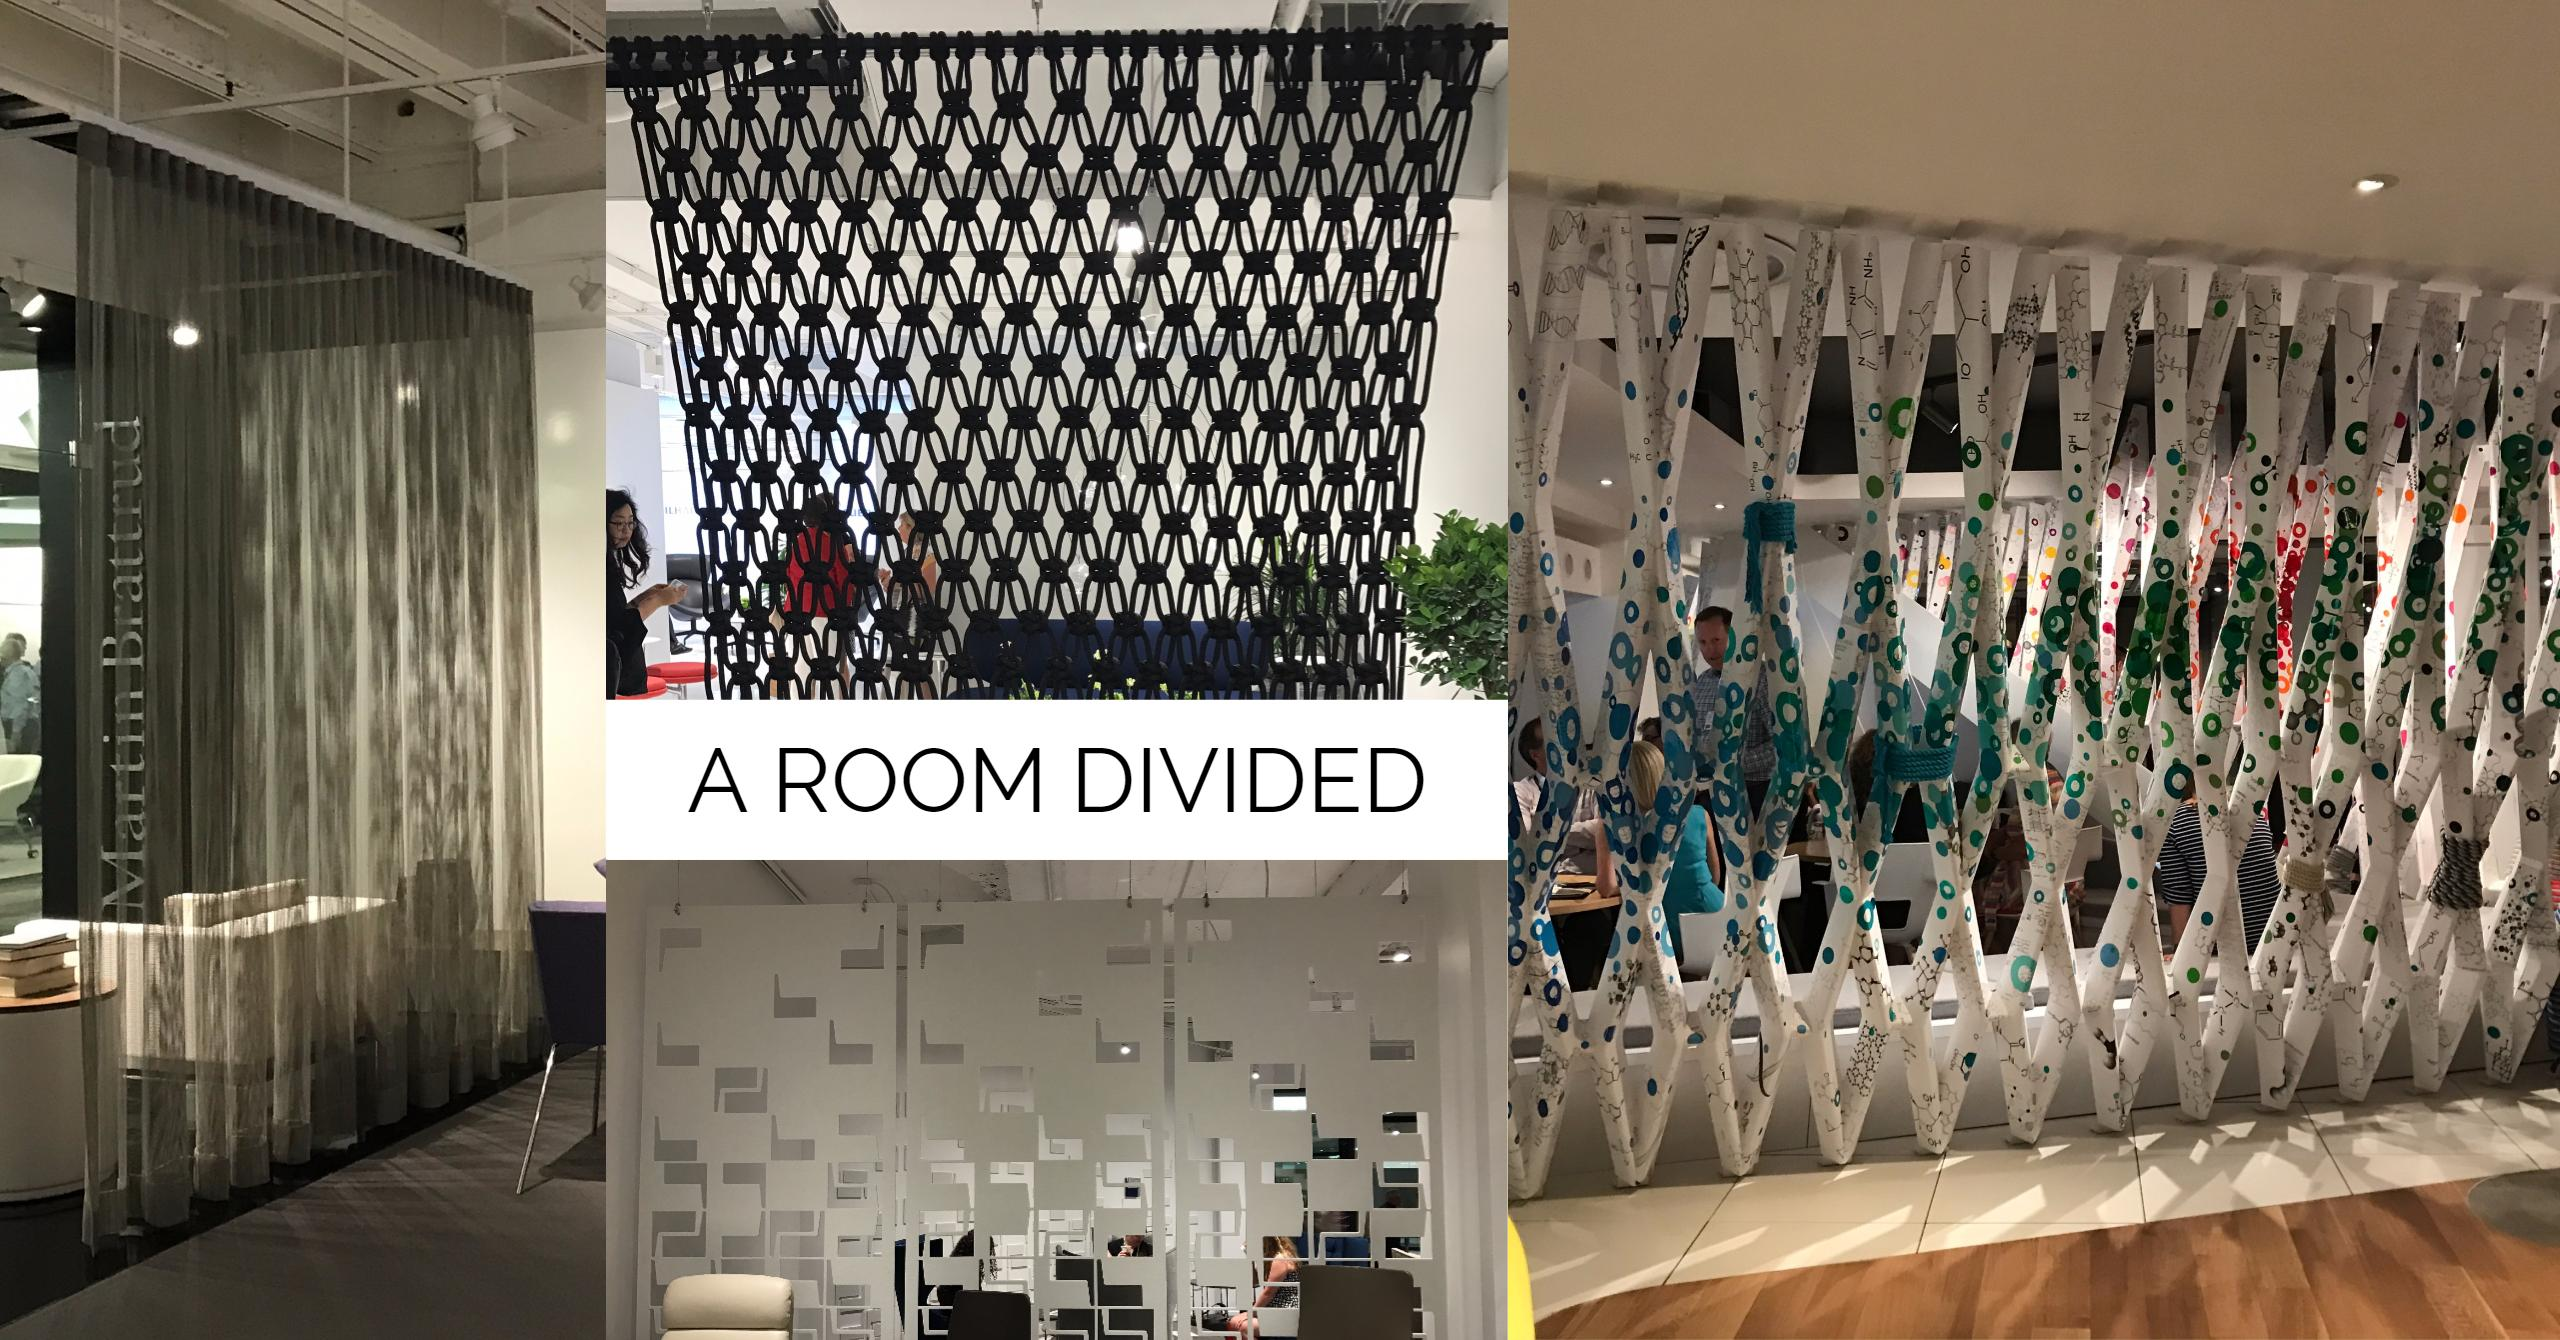 NEOCON 2017 A Room Divided Benchmarc Display